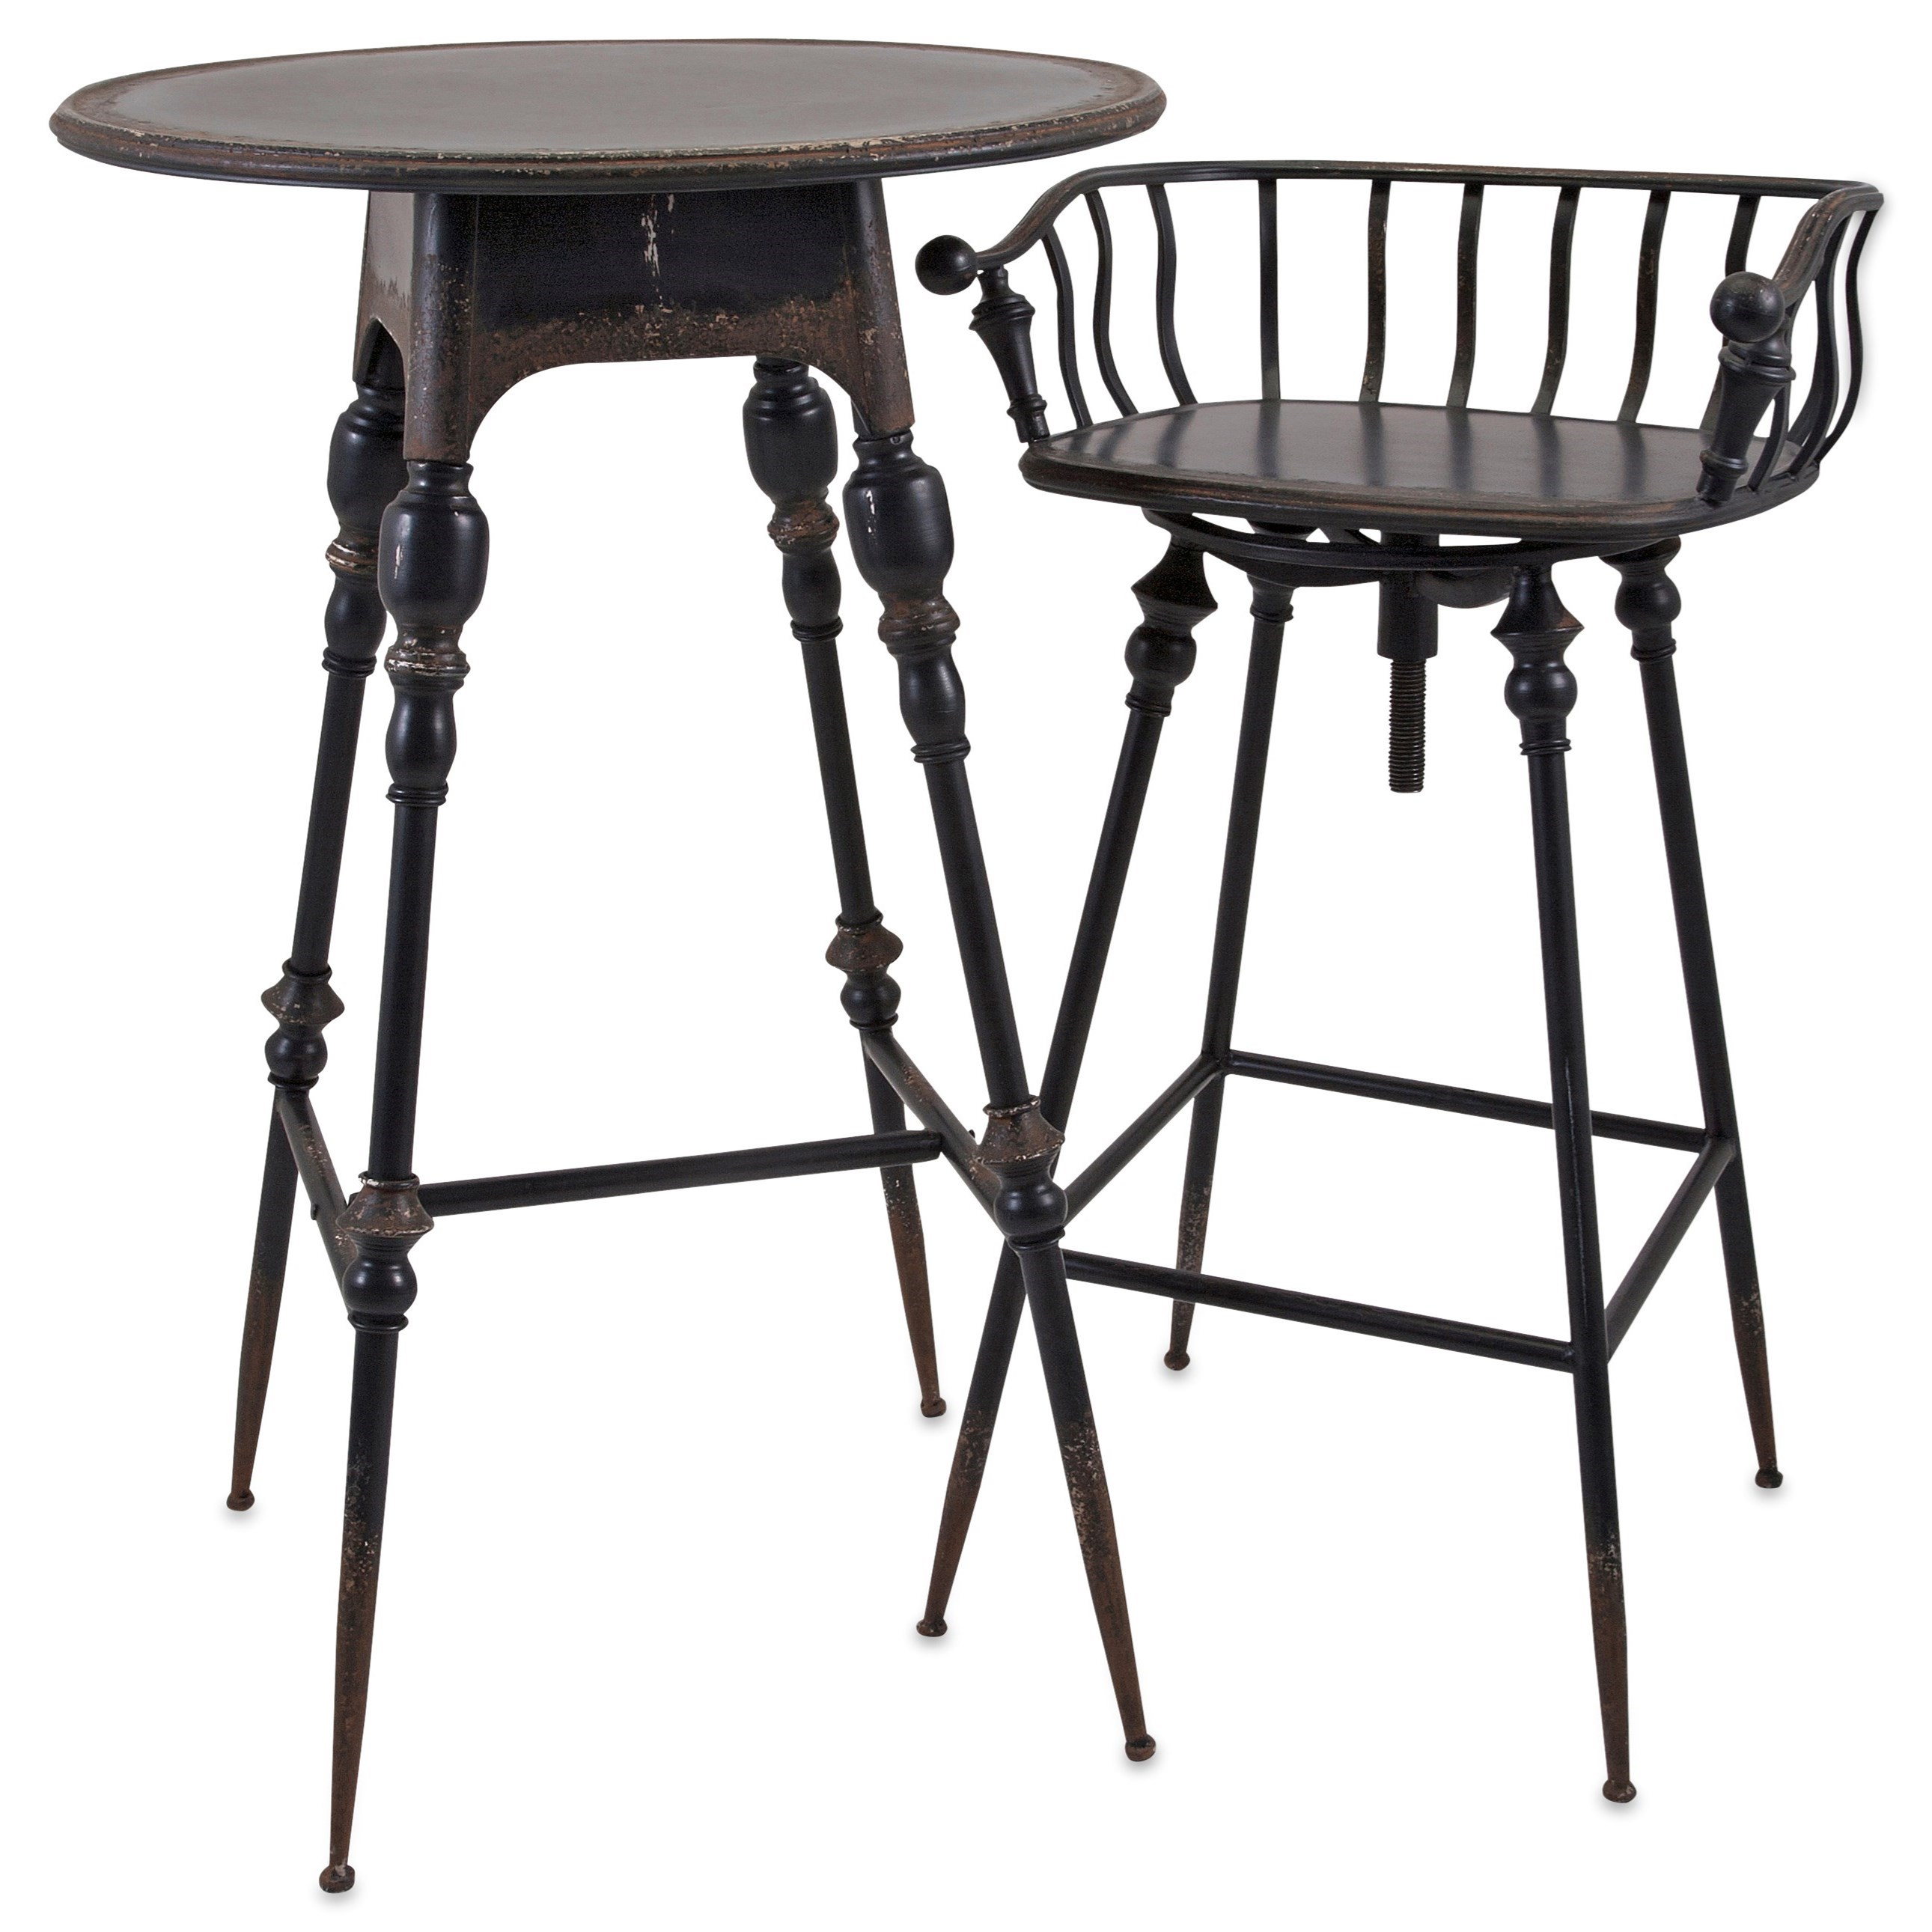 Accent Tables and Cabinets Crestly Metal Bar Table by IMAX Worldwide Home at Alison Craig Home Furnishings